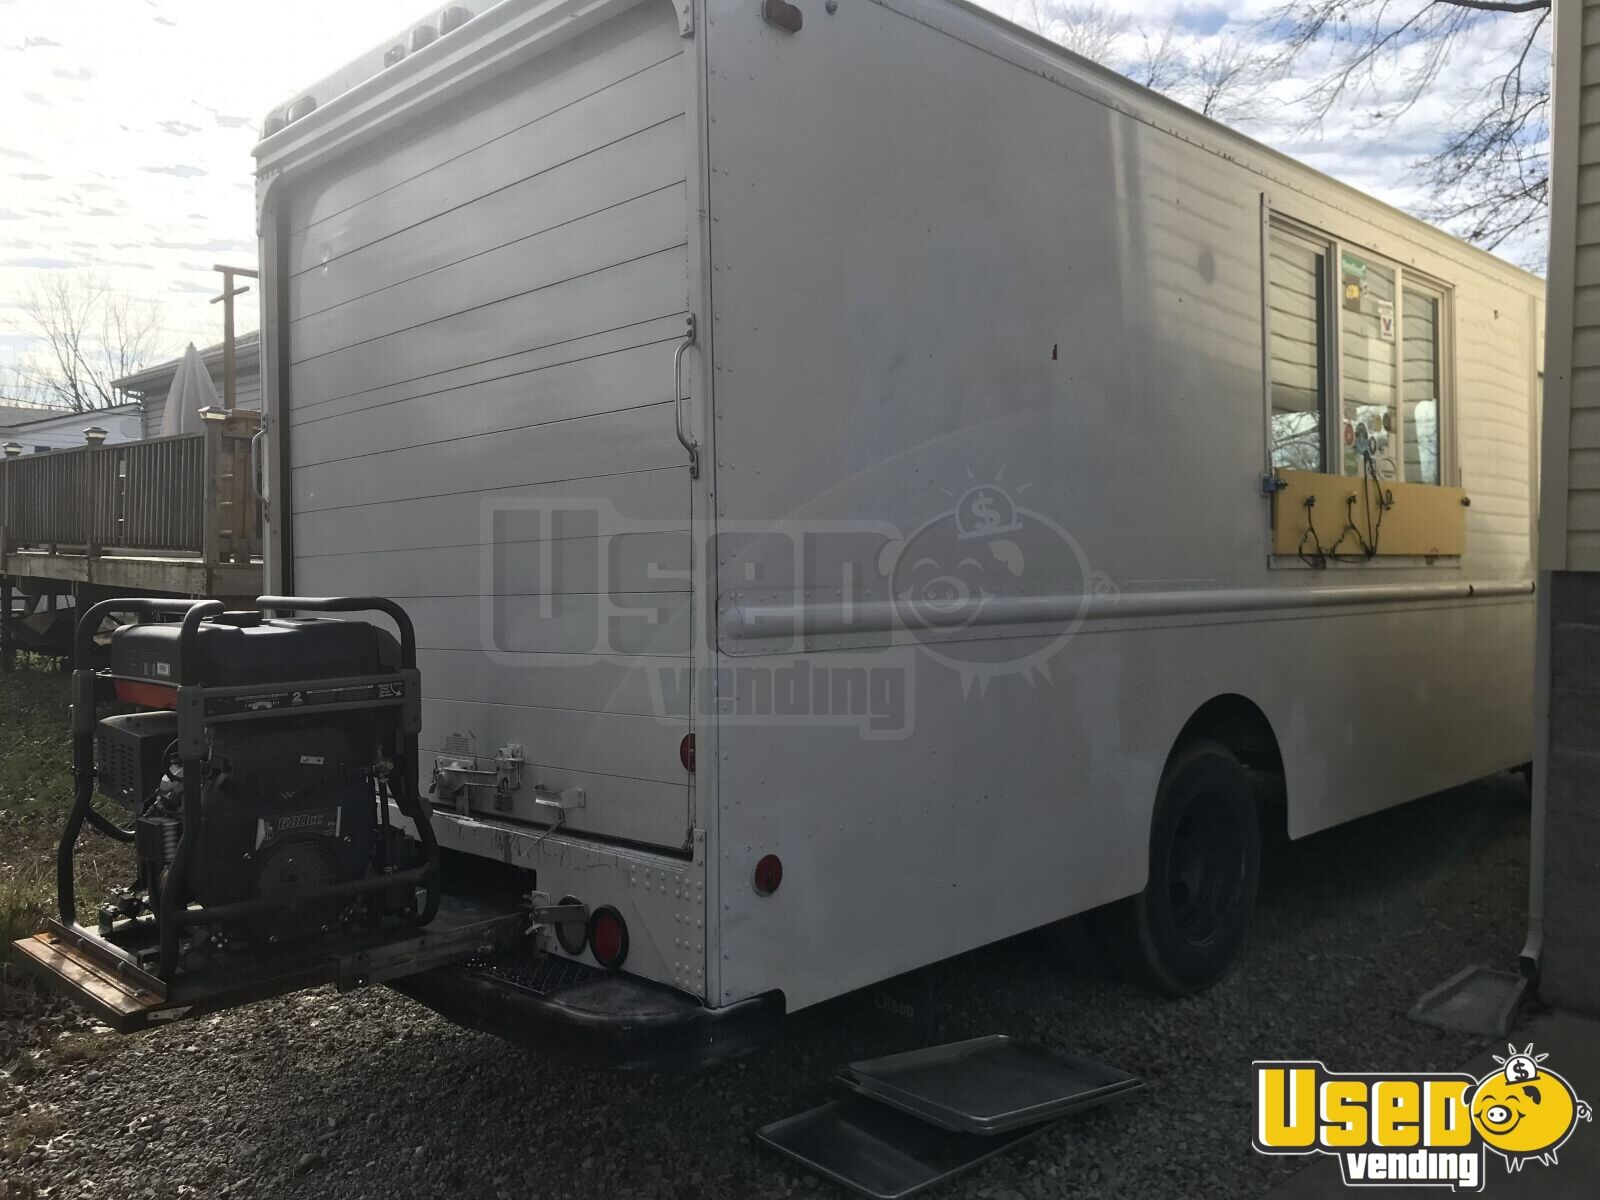 1996 Chevy Food Truck Air Conditioning Kentucky Diesel Engine for Sale - 2